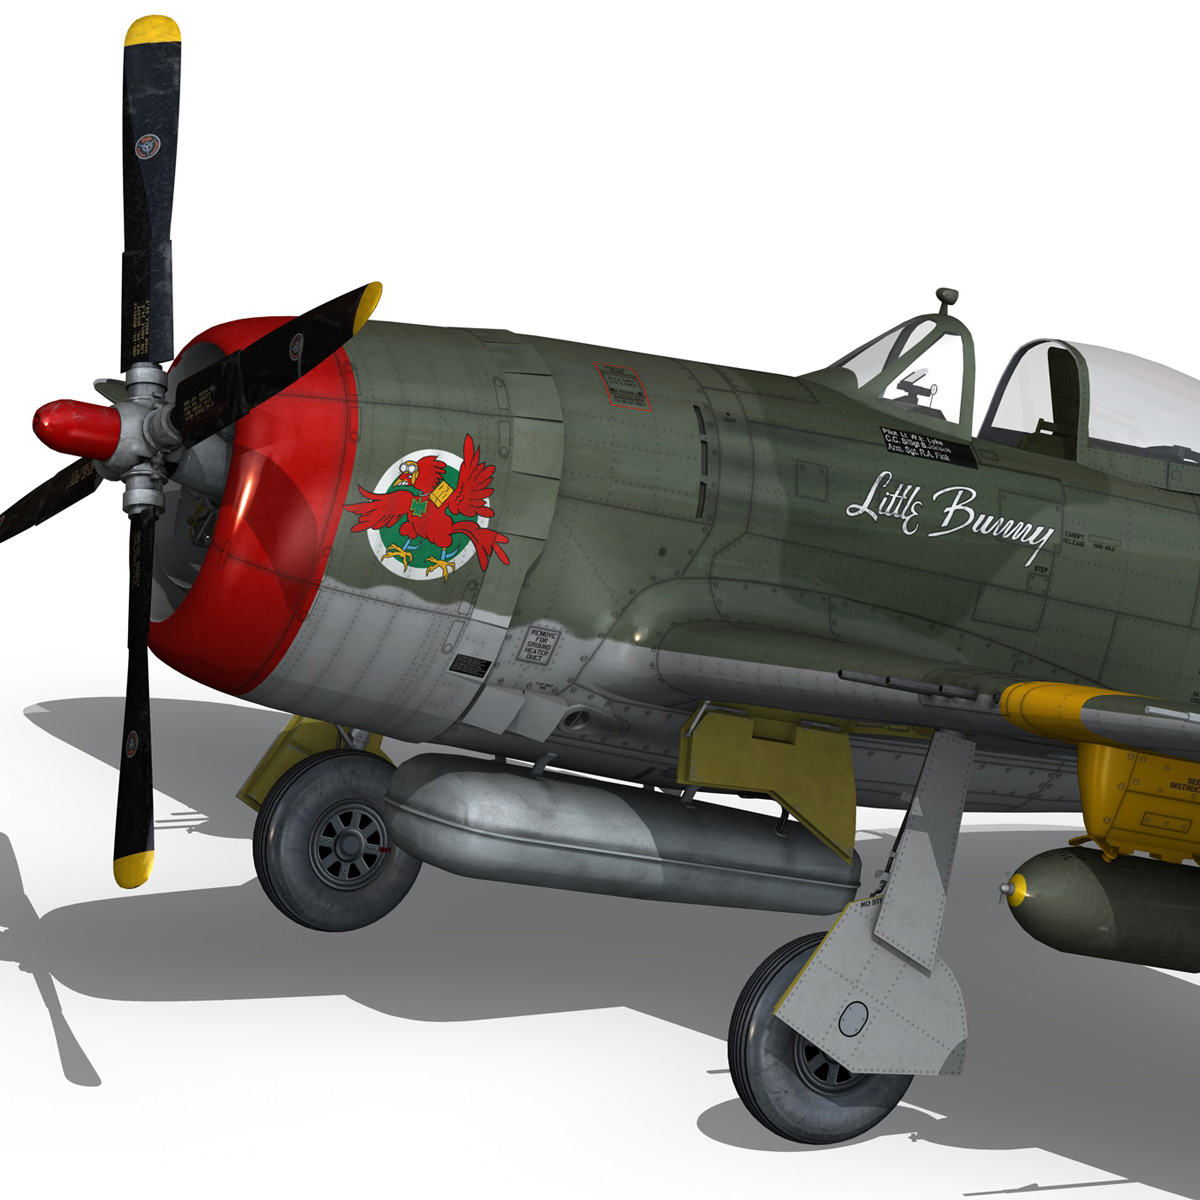 republic p-47d thunderbolt – little bunny 3d model fbx c4d lwo obj 274227